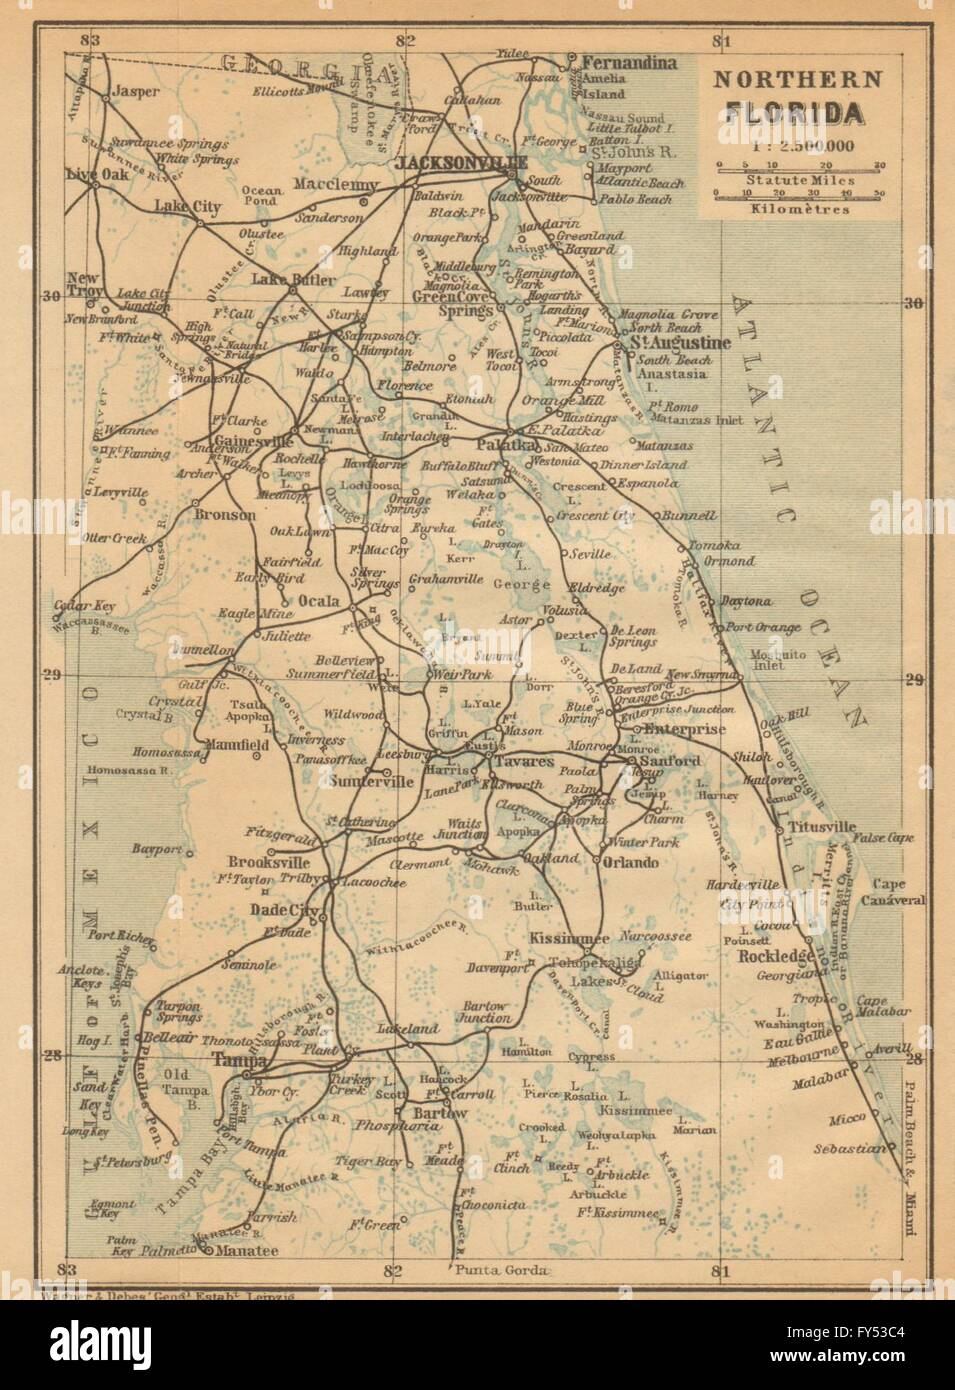 Northern Florida Map.Northern Florida Jacksonville St Augustine Tampa Baedeker 1904